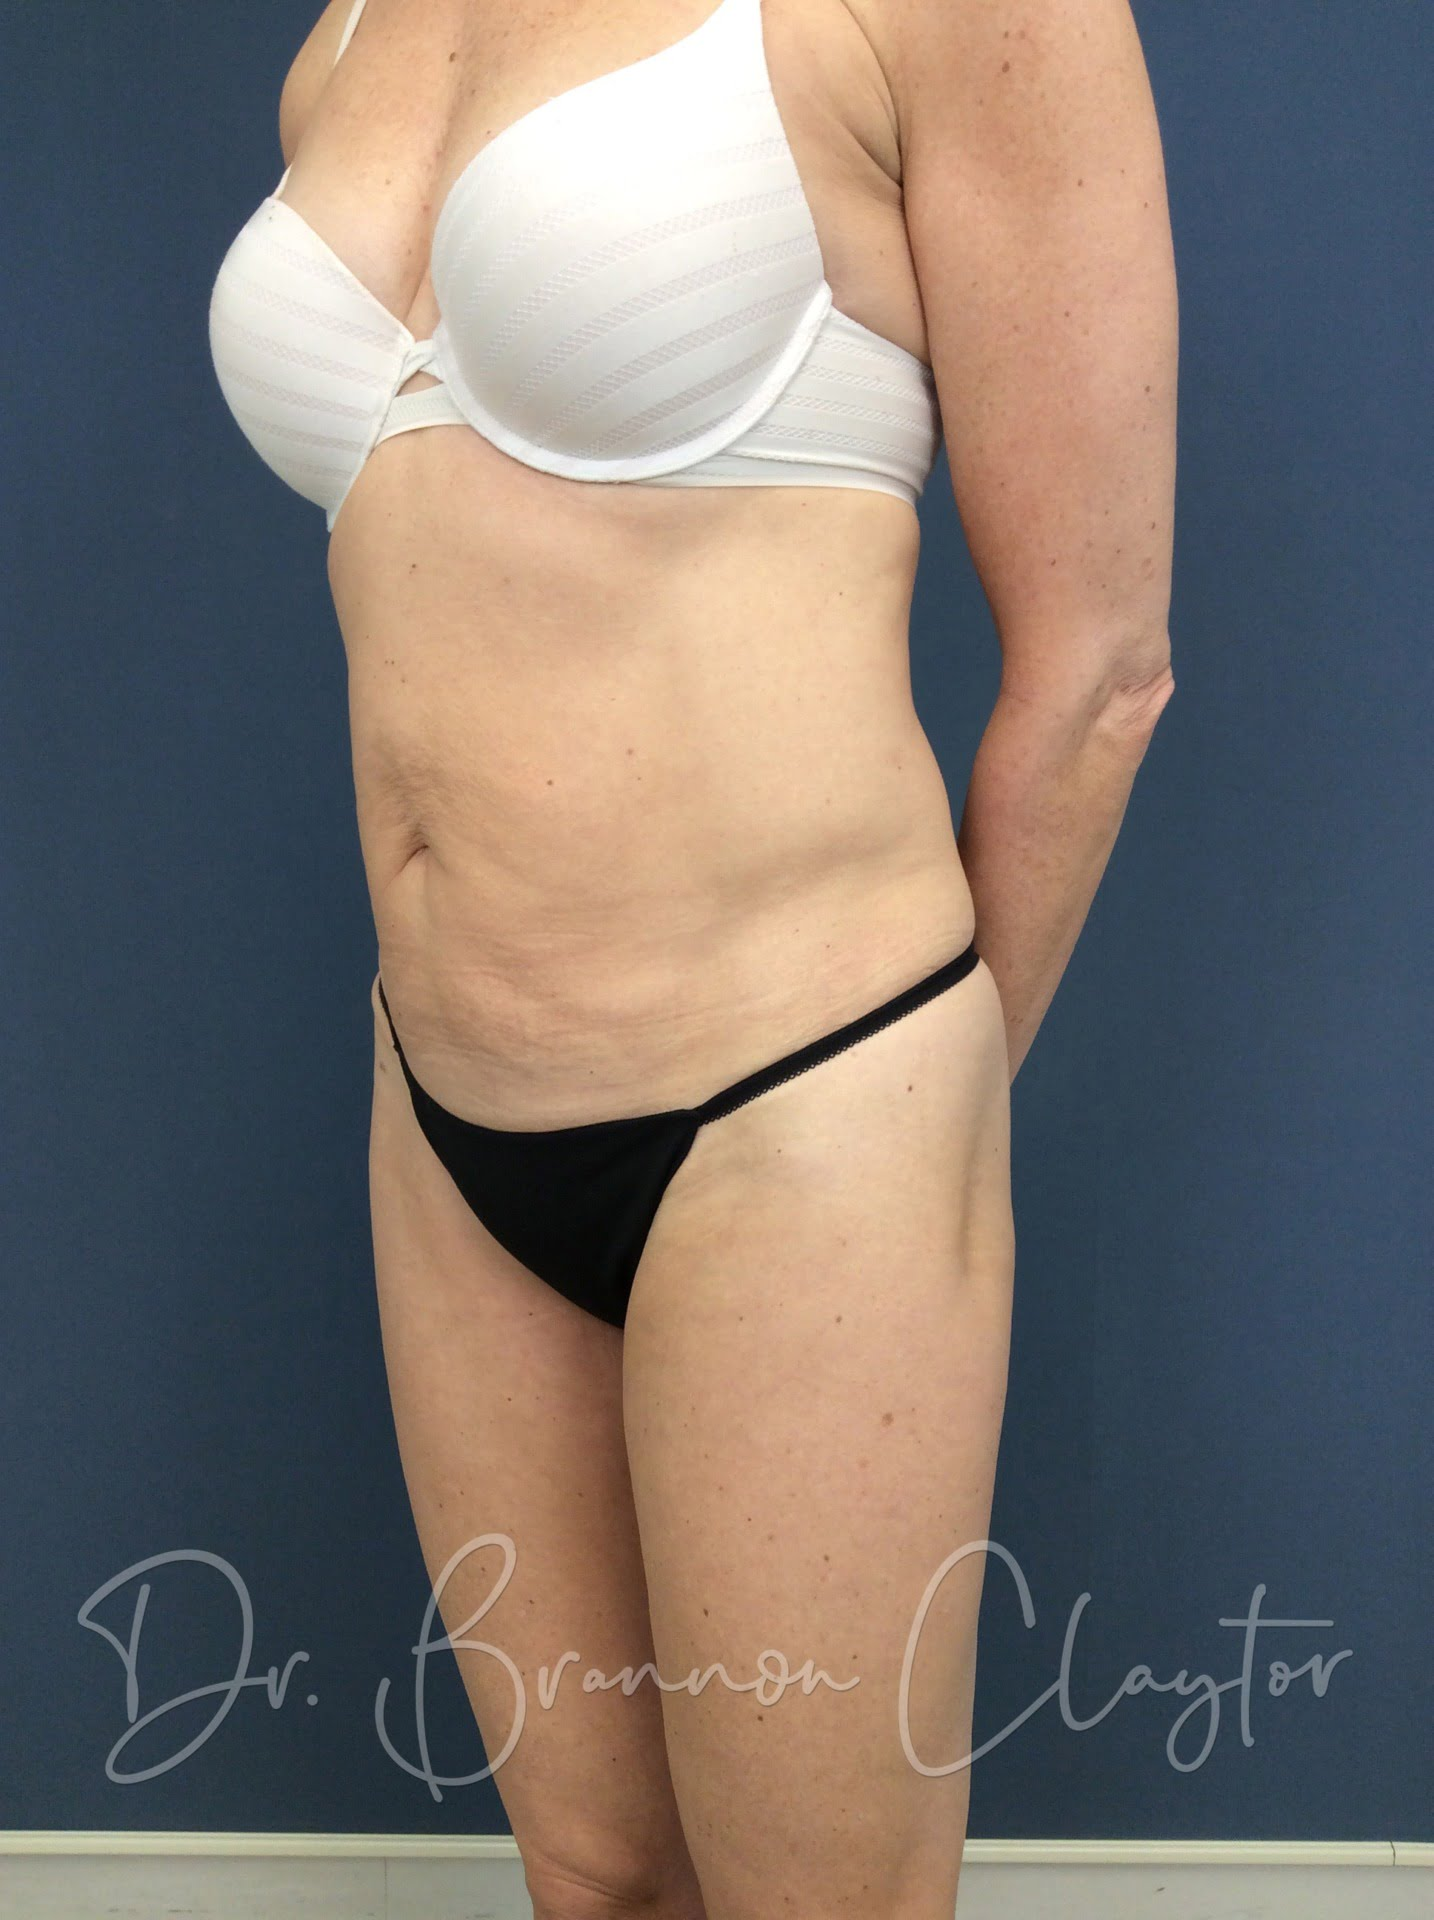 58 Year Old 1 treatment of CoolSculpting After